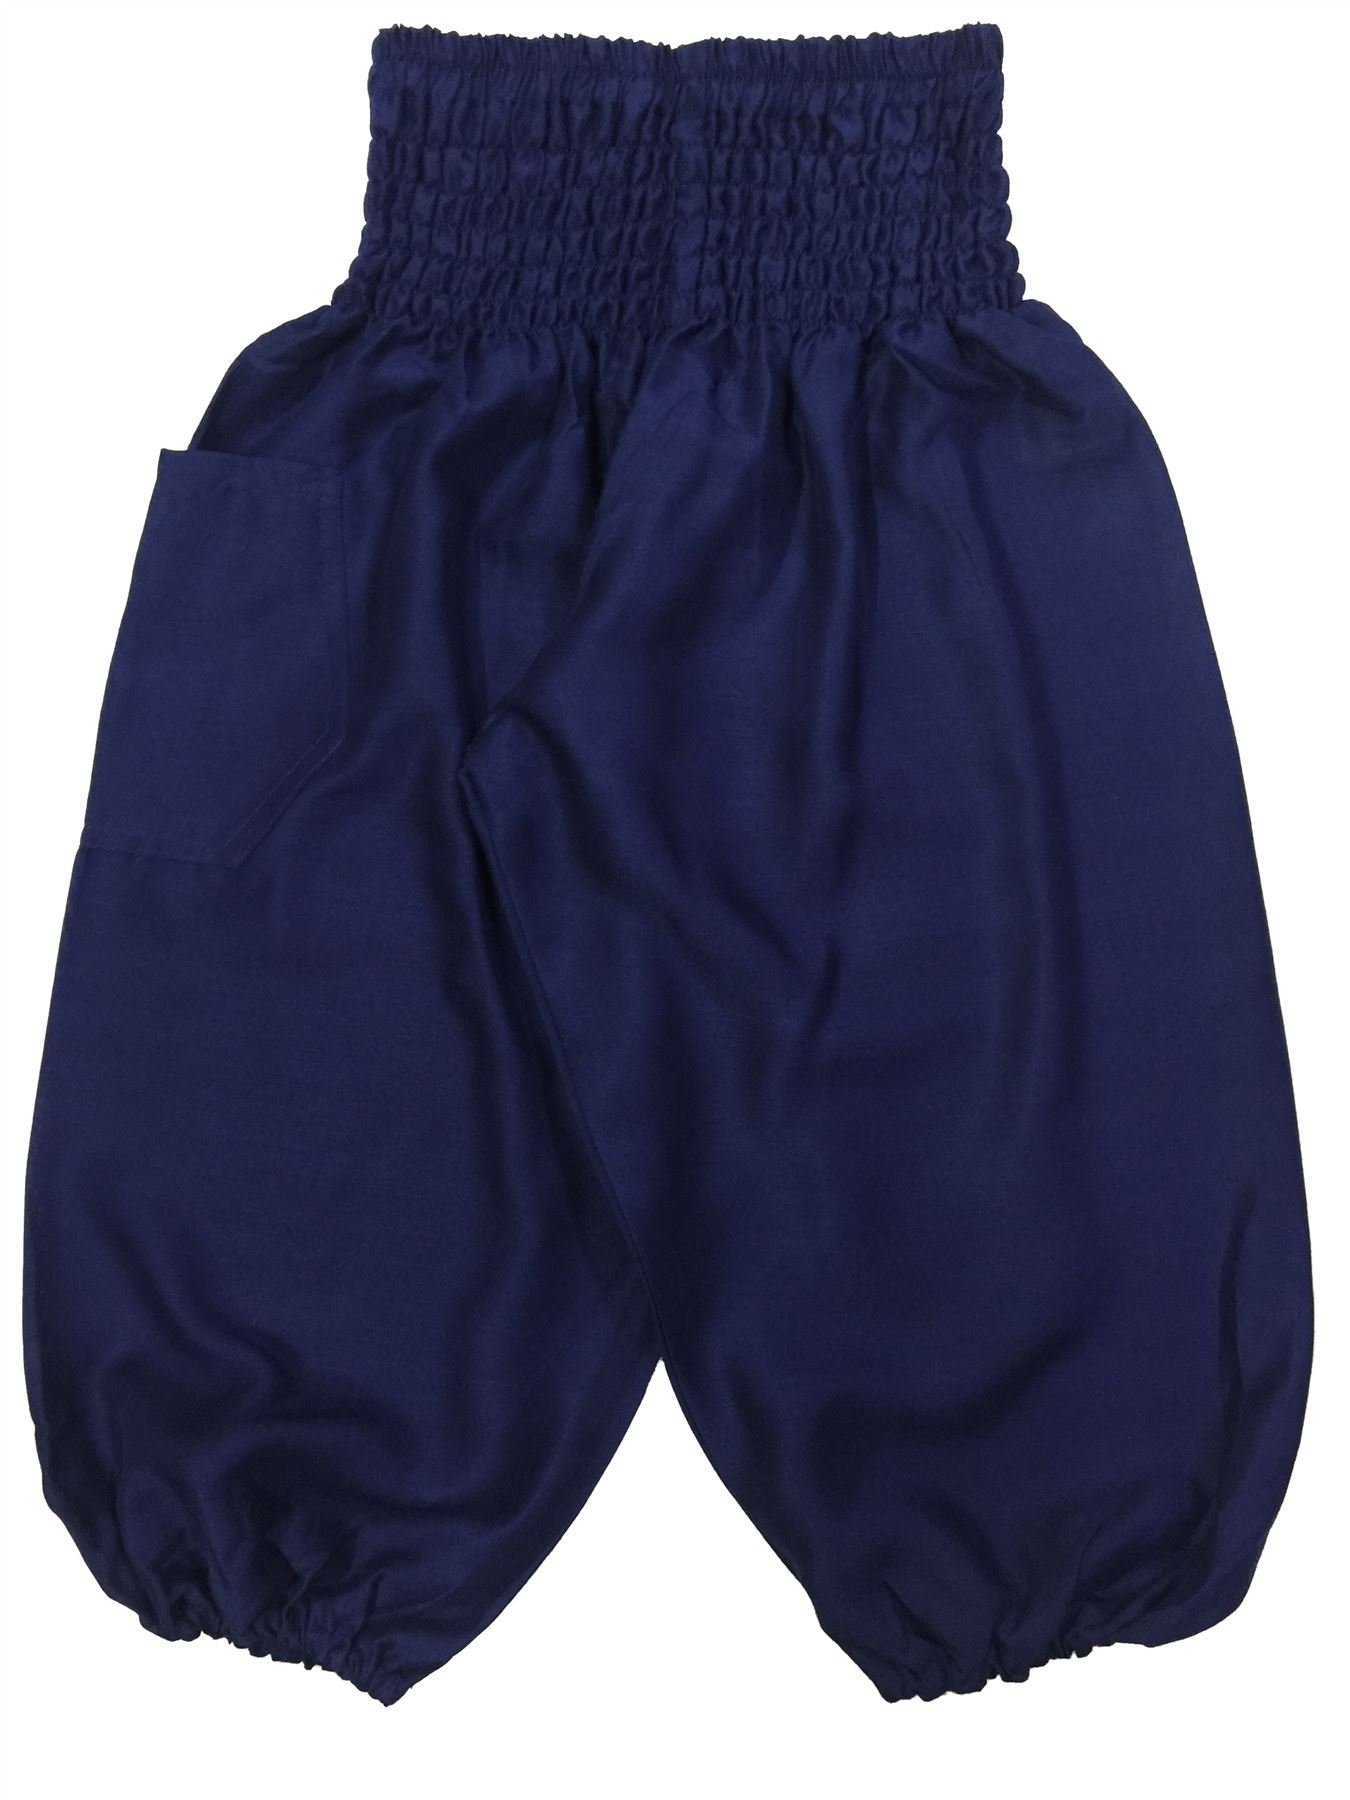 4ce1ca3f10dc Galleon - Lofbaz Kids Solid Hippy Gphsy Child Pirate Pants Thai Bohemian  Dark Blue Size 4T